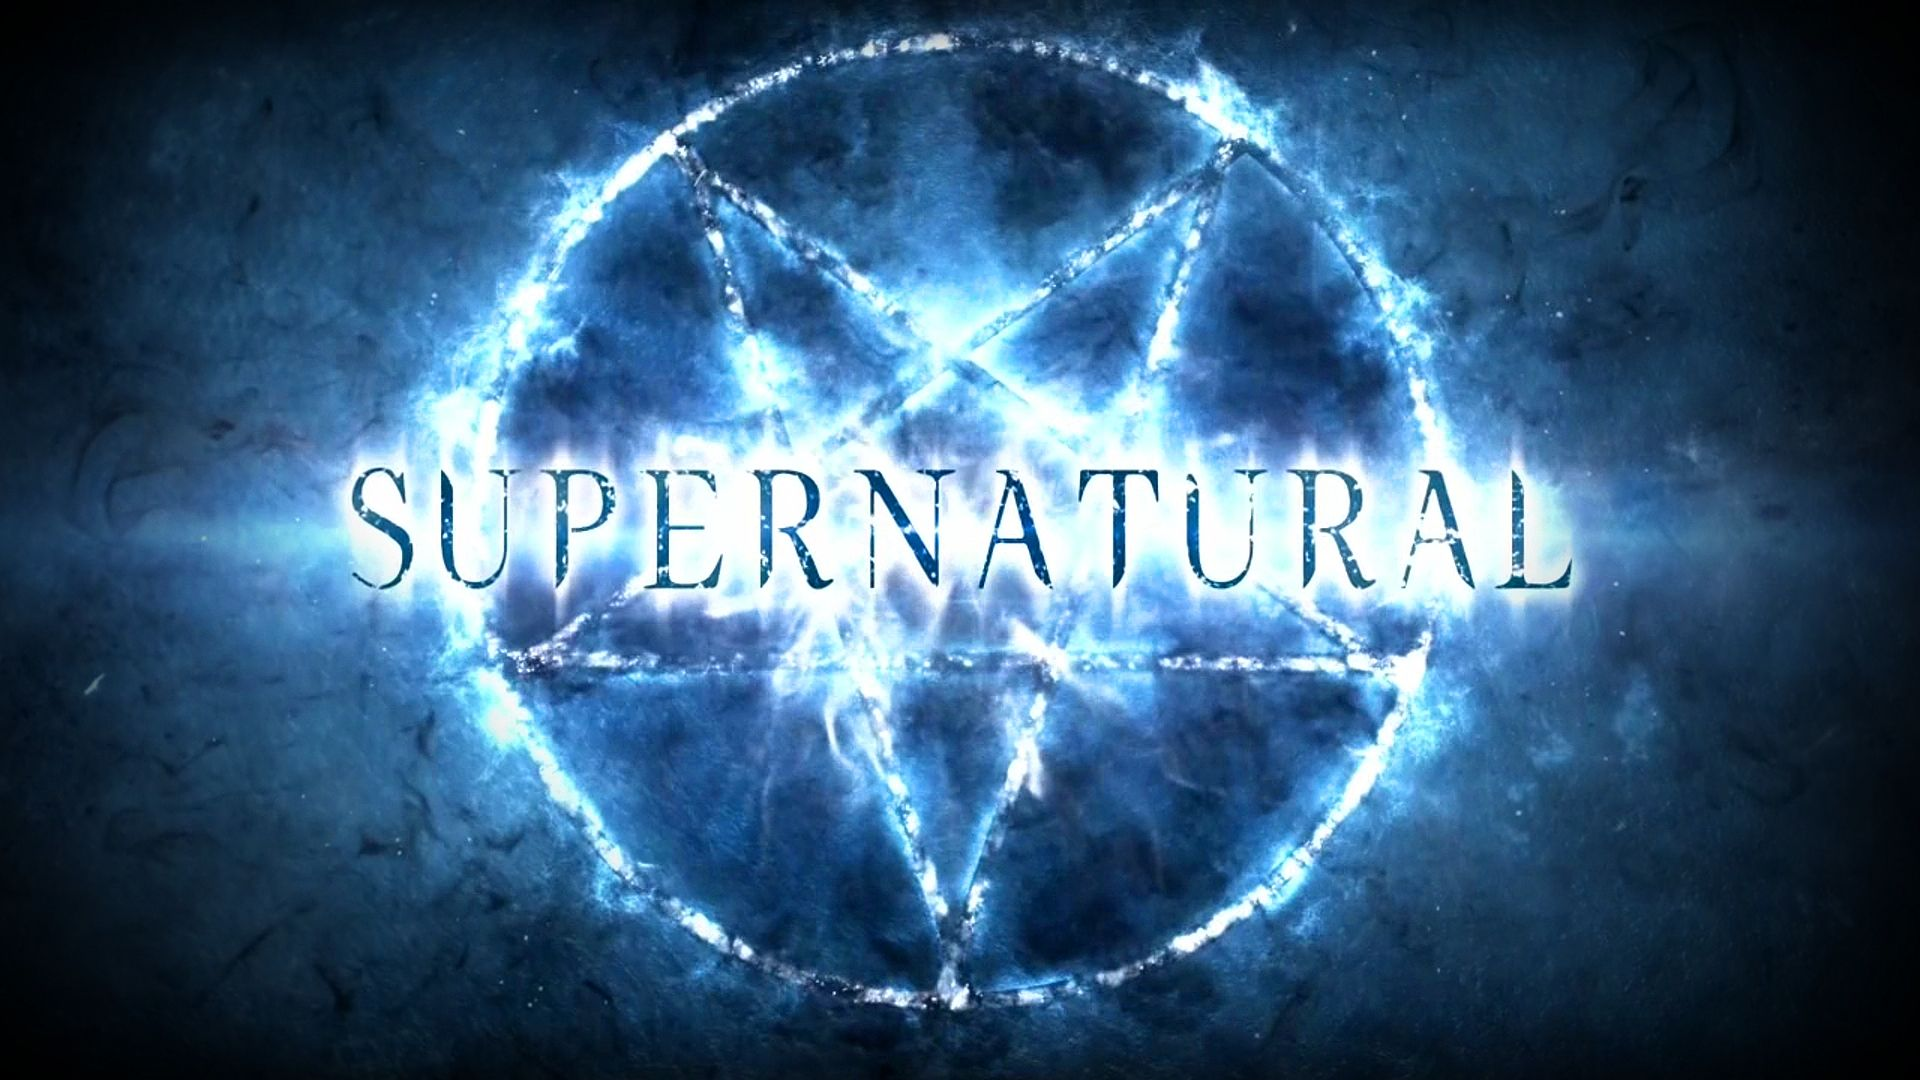 Supernatural Season 11 Blu Ray Review | We Live EntertainmentSupernatural